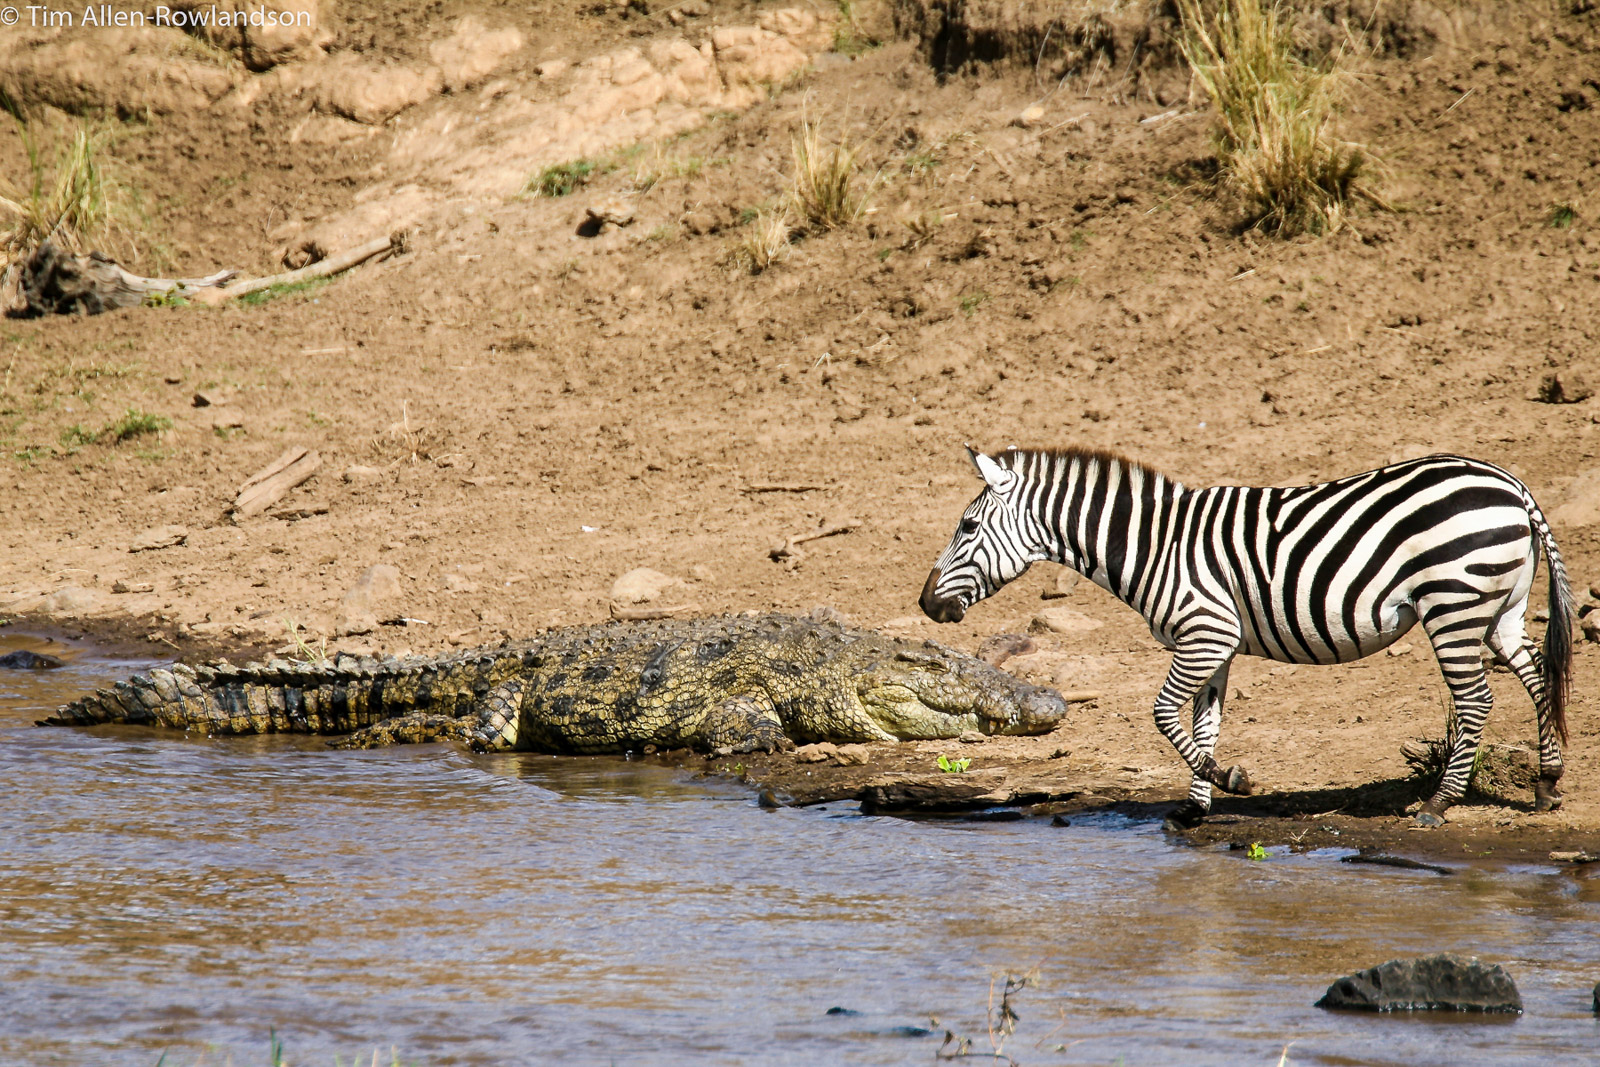 Zebra calmly entering the Mara River, closely passing a basking crocodile.